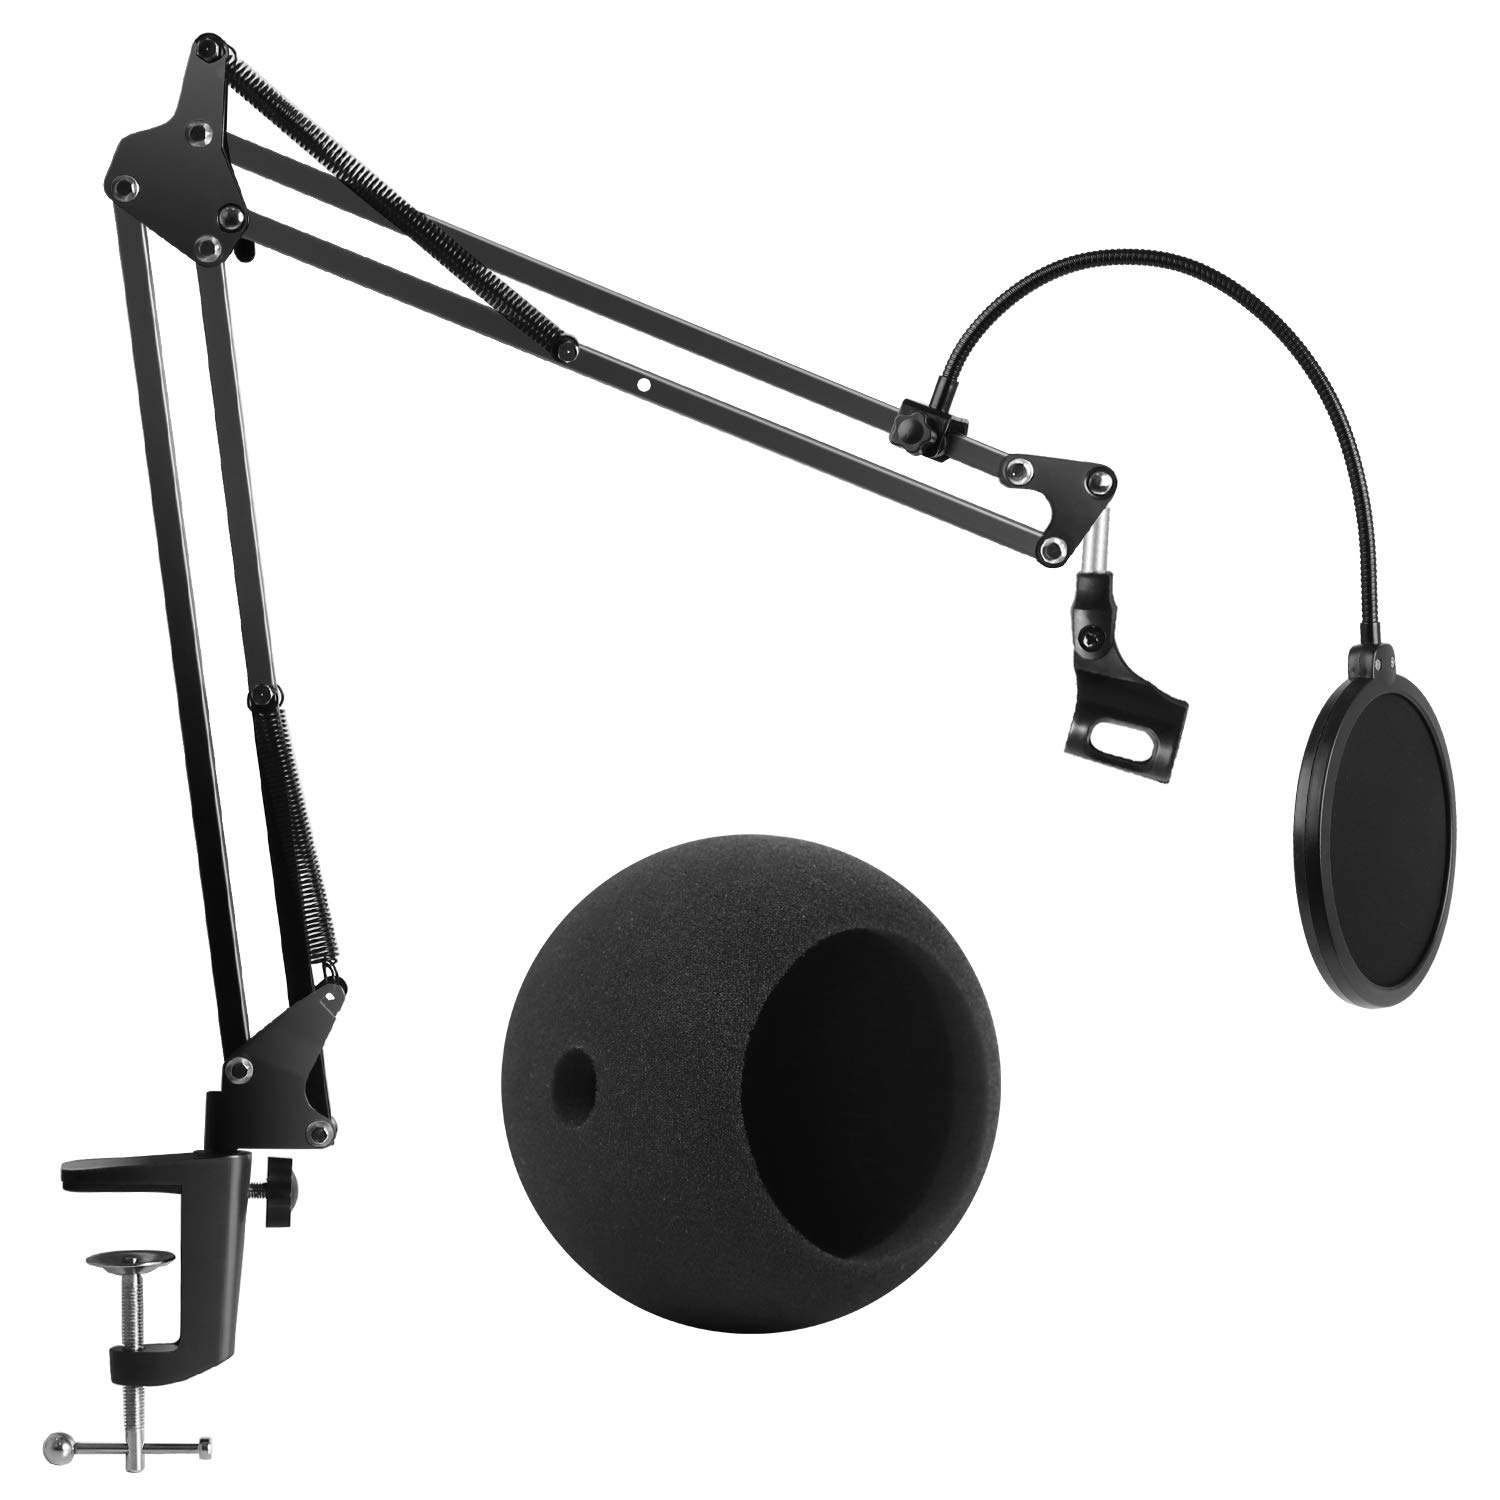 InnoGear Adjustable Microphone Suspension Boom Scissor Arm Stand with Microphone Windscreen and Dual Layered Mic Pop Filter for Blue Snowball ICE and Blue Snowball, Max Load 1.5 KG by InnoGear